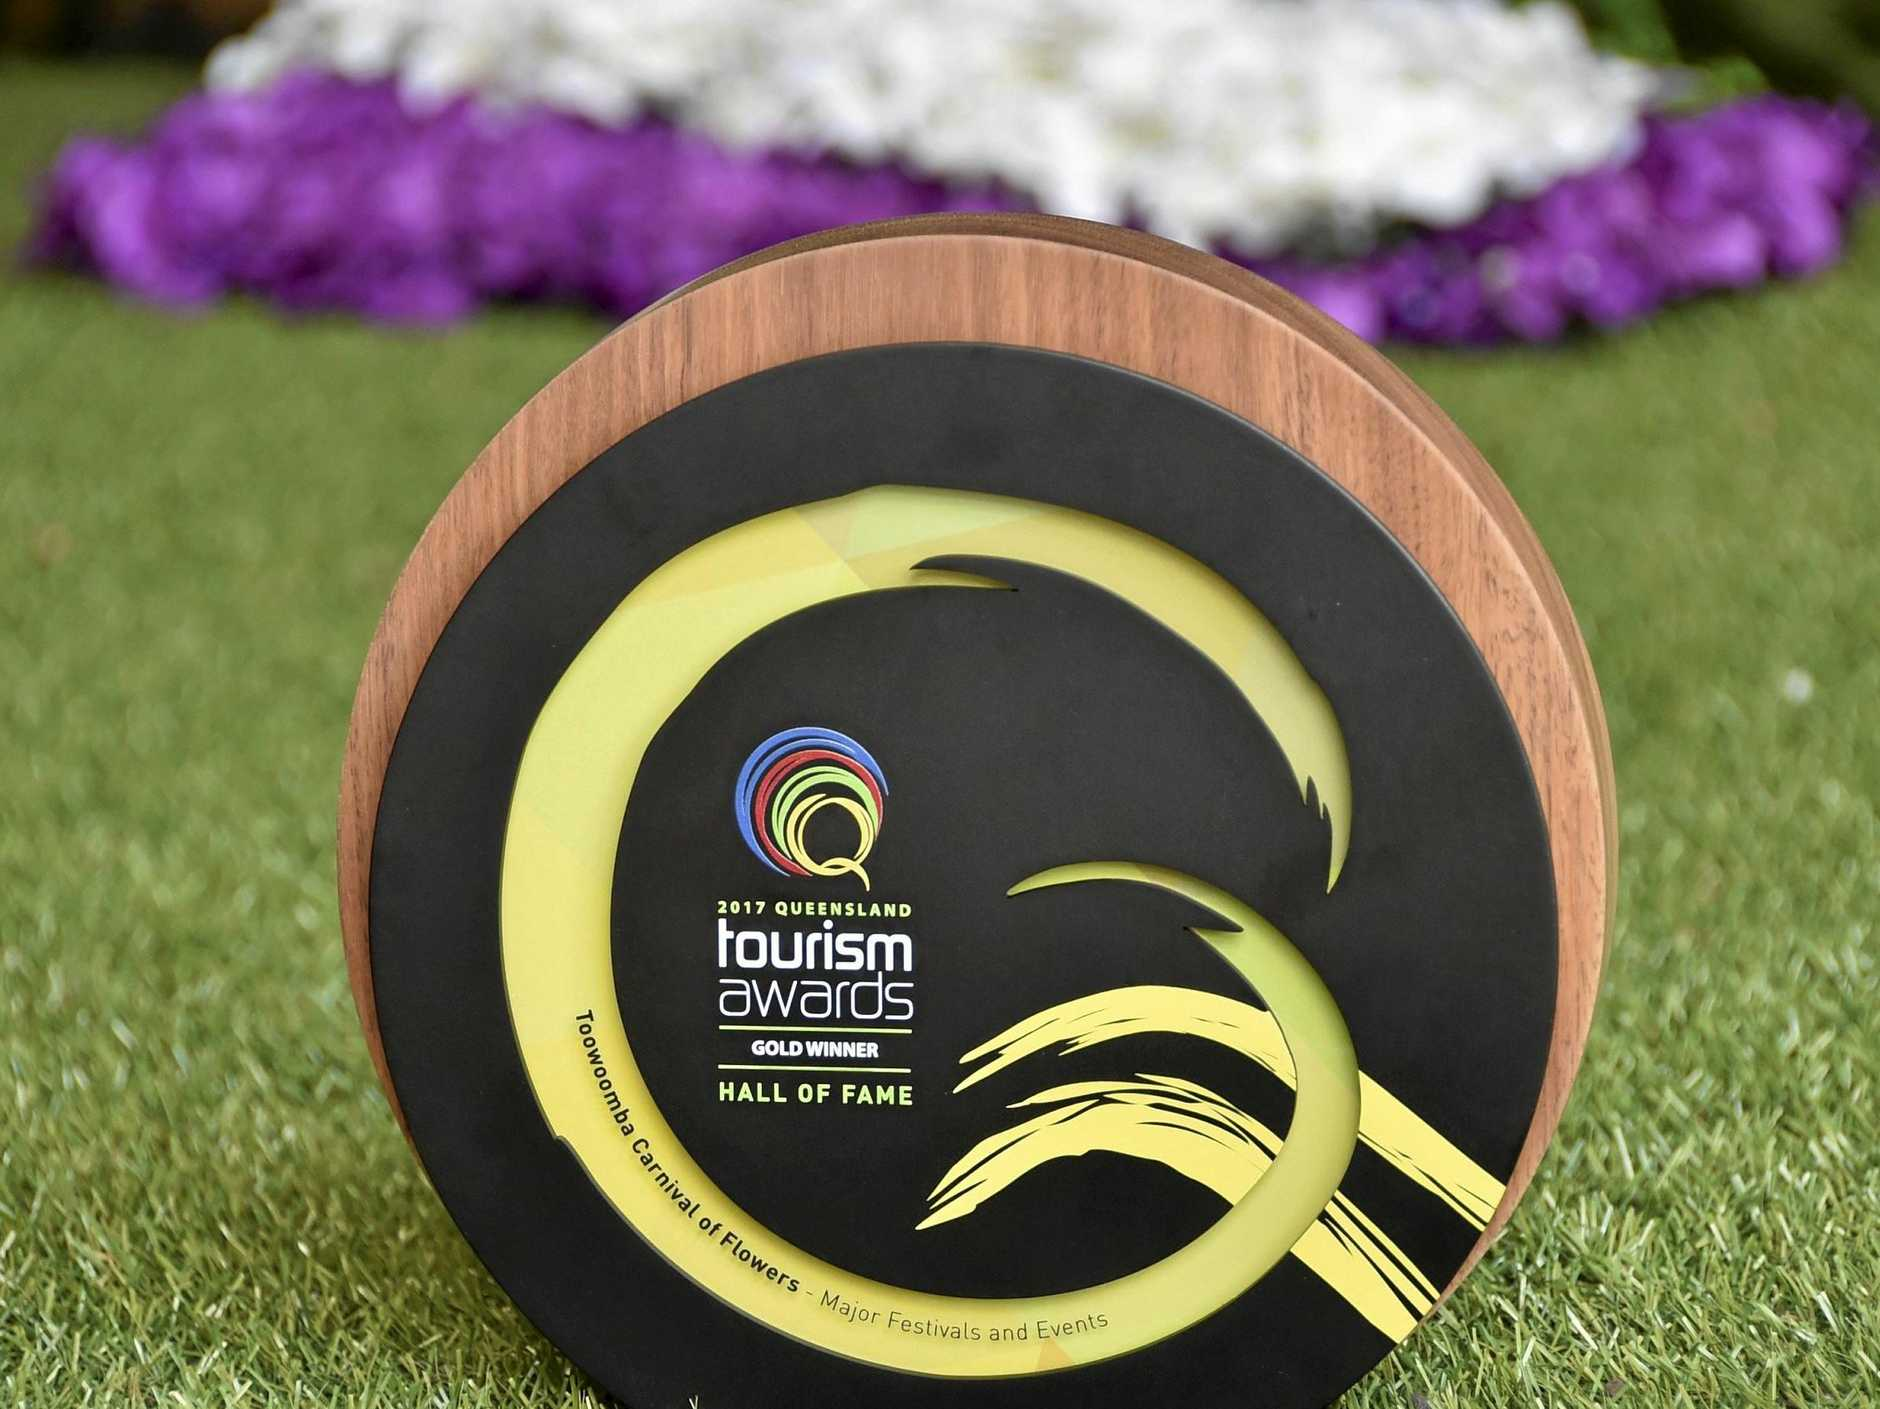 Tourism award for the best major festival in Queensland, the Toowoomba Carnival of Flowers.